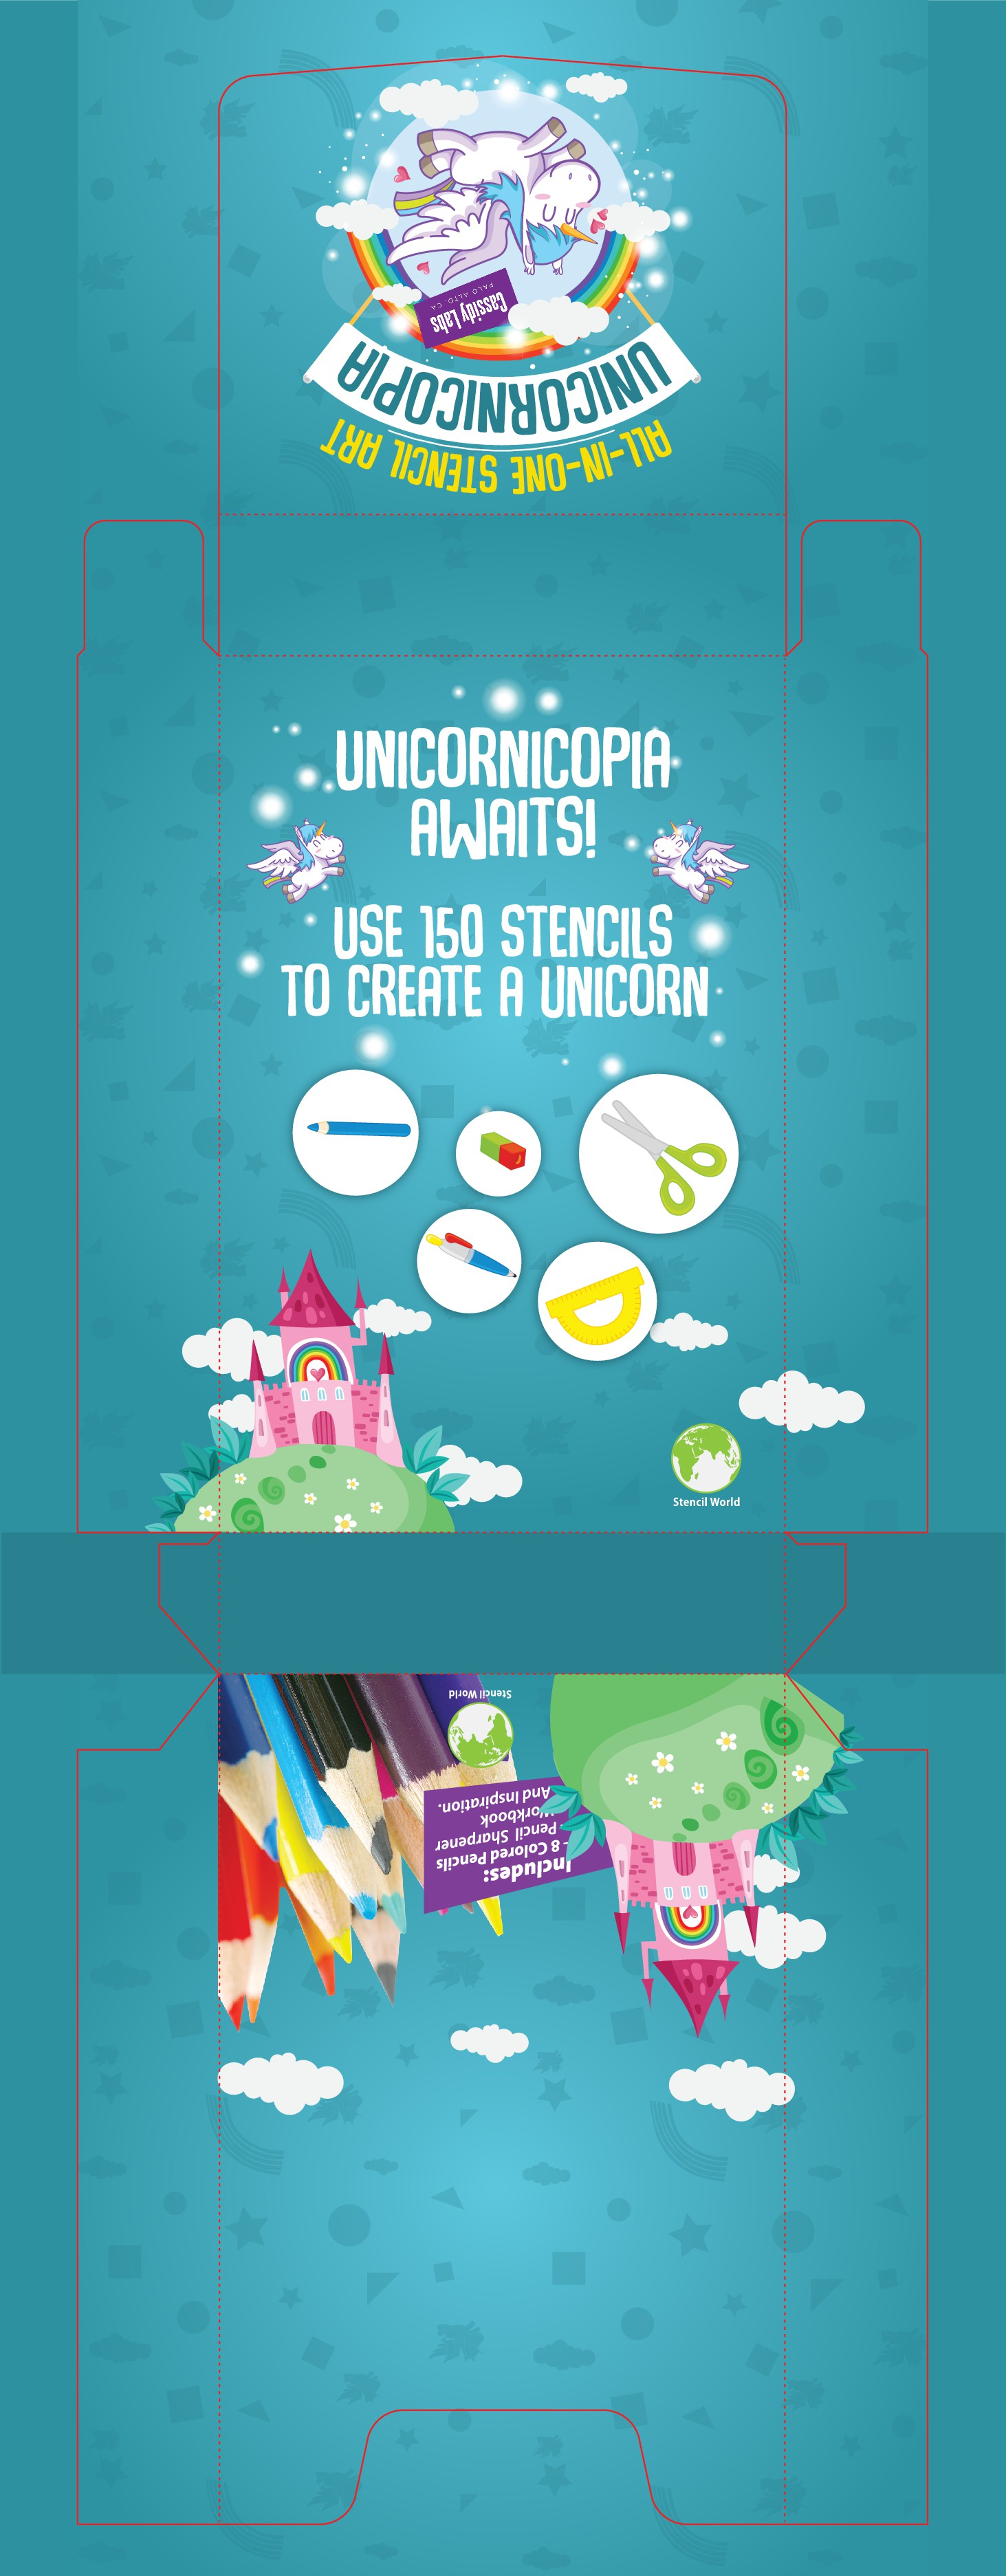 Design a playful Stencil Kit for Kids (to be sold at retail).